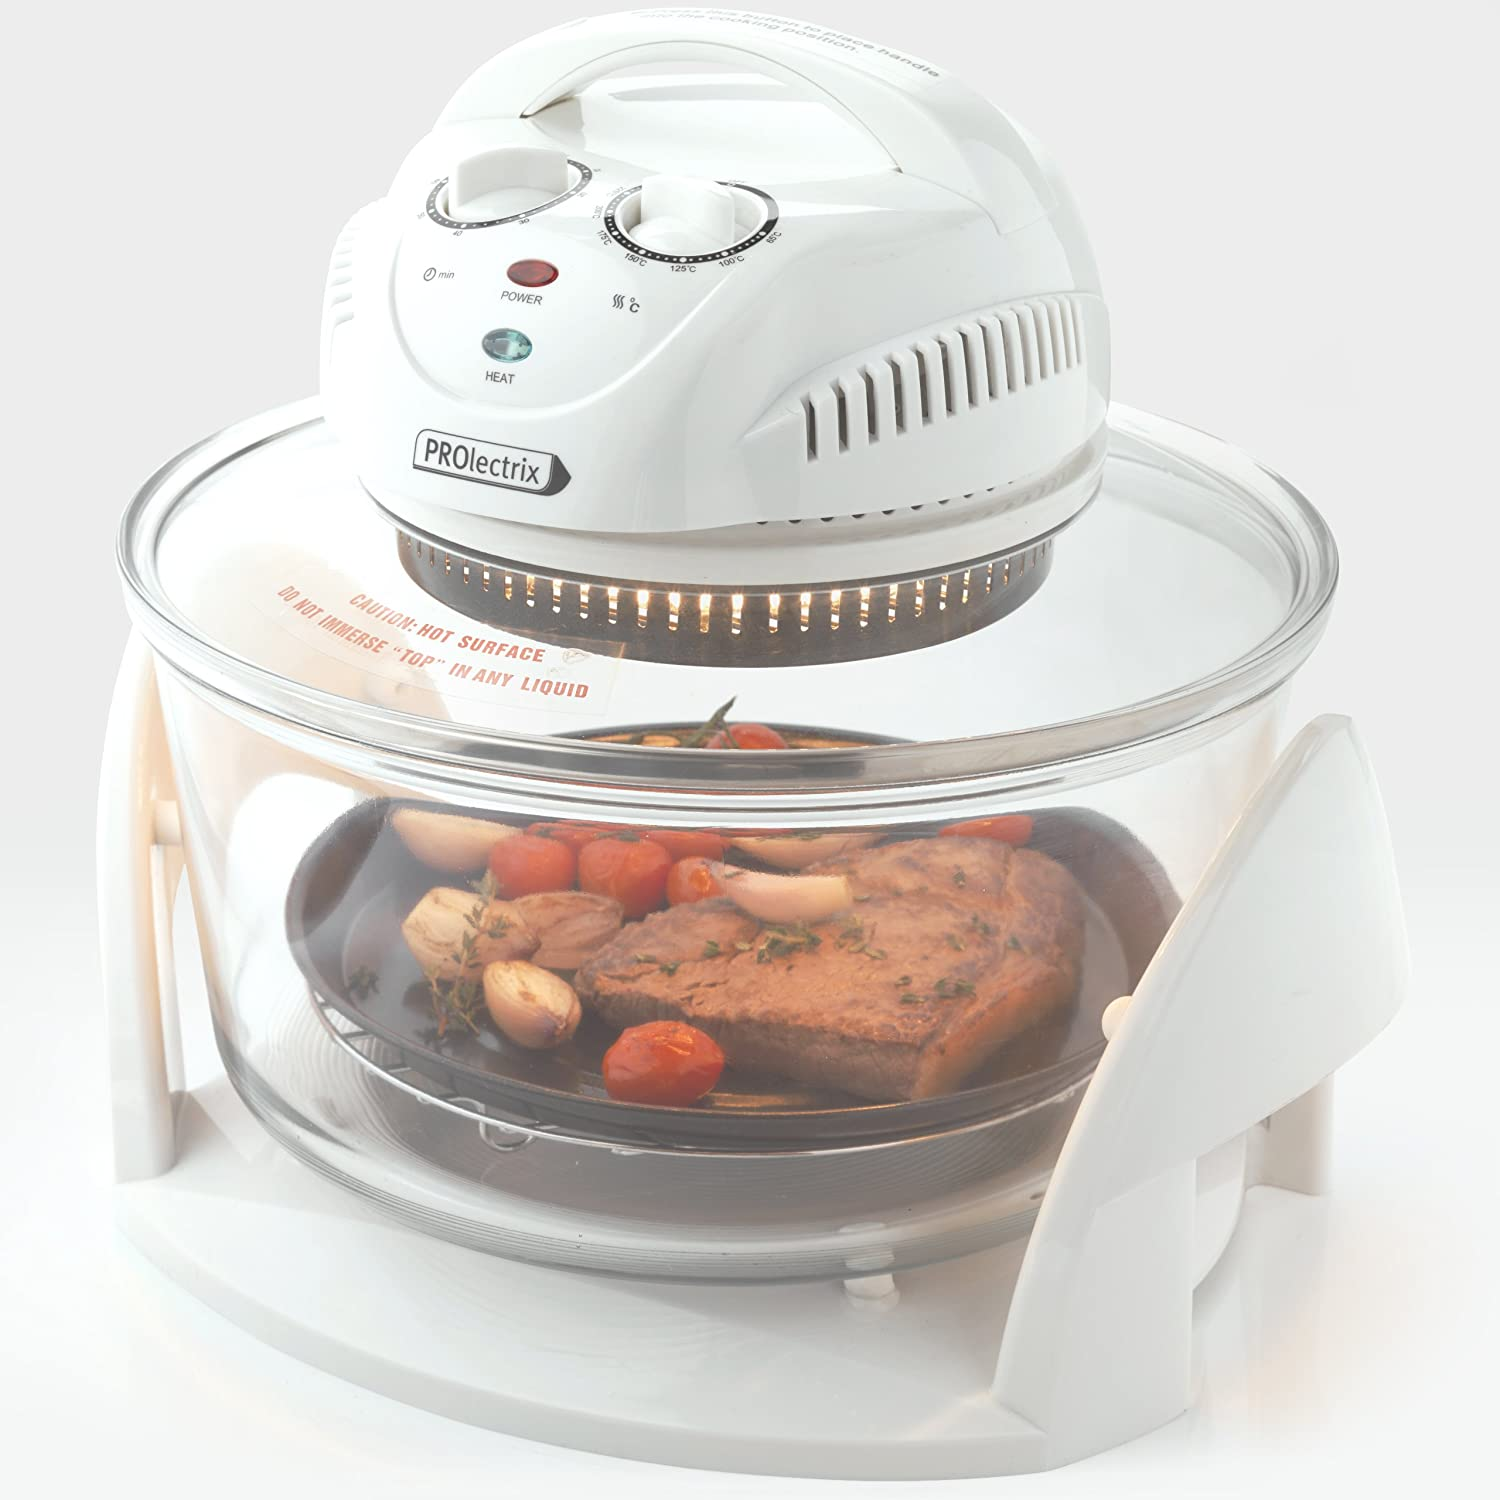 Prolectrix Infra Chef Family Size Halogen Oven Amazon